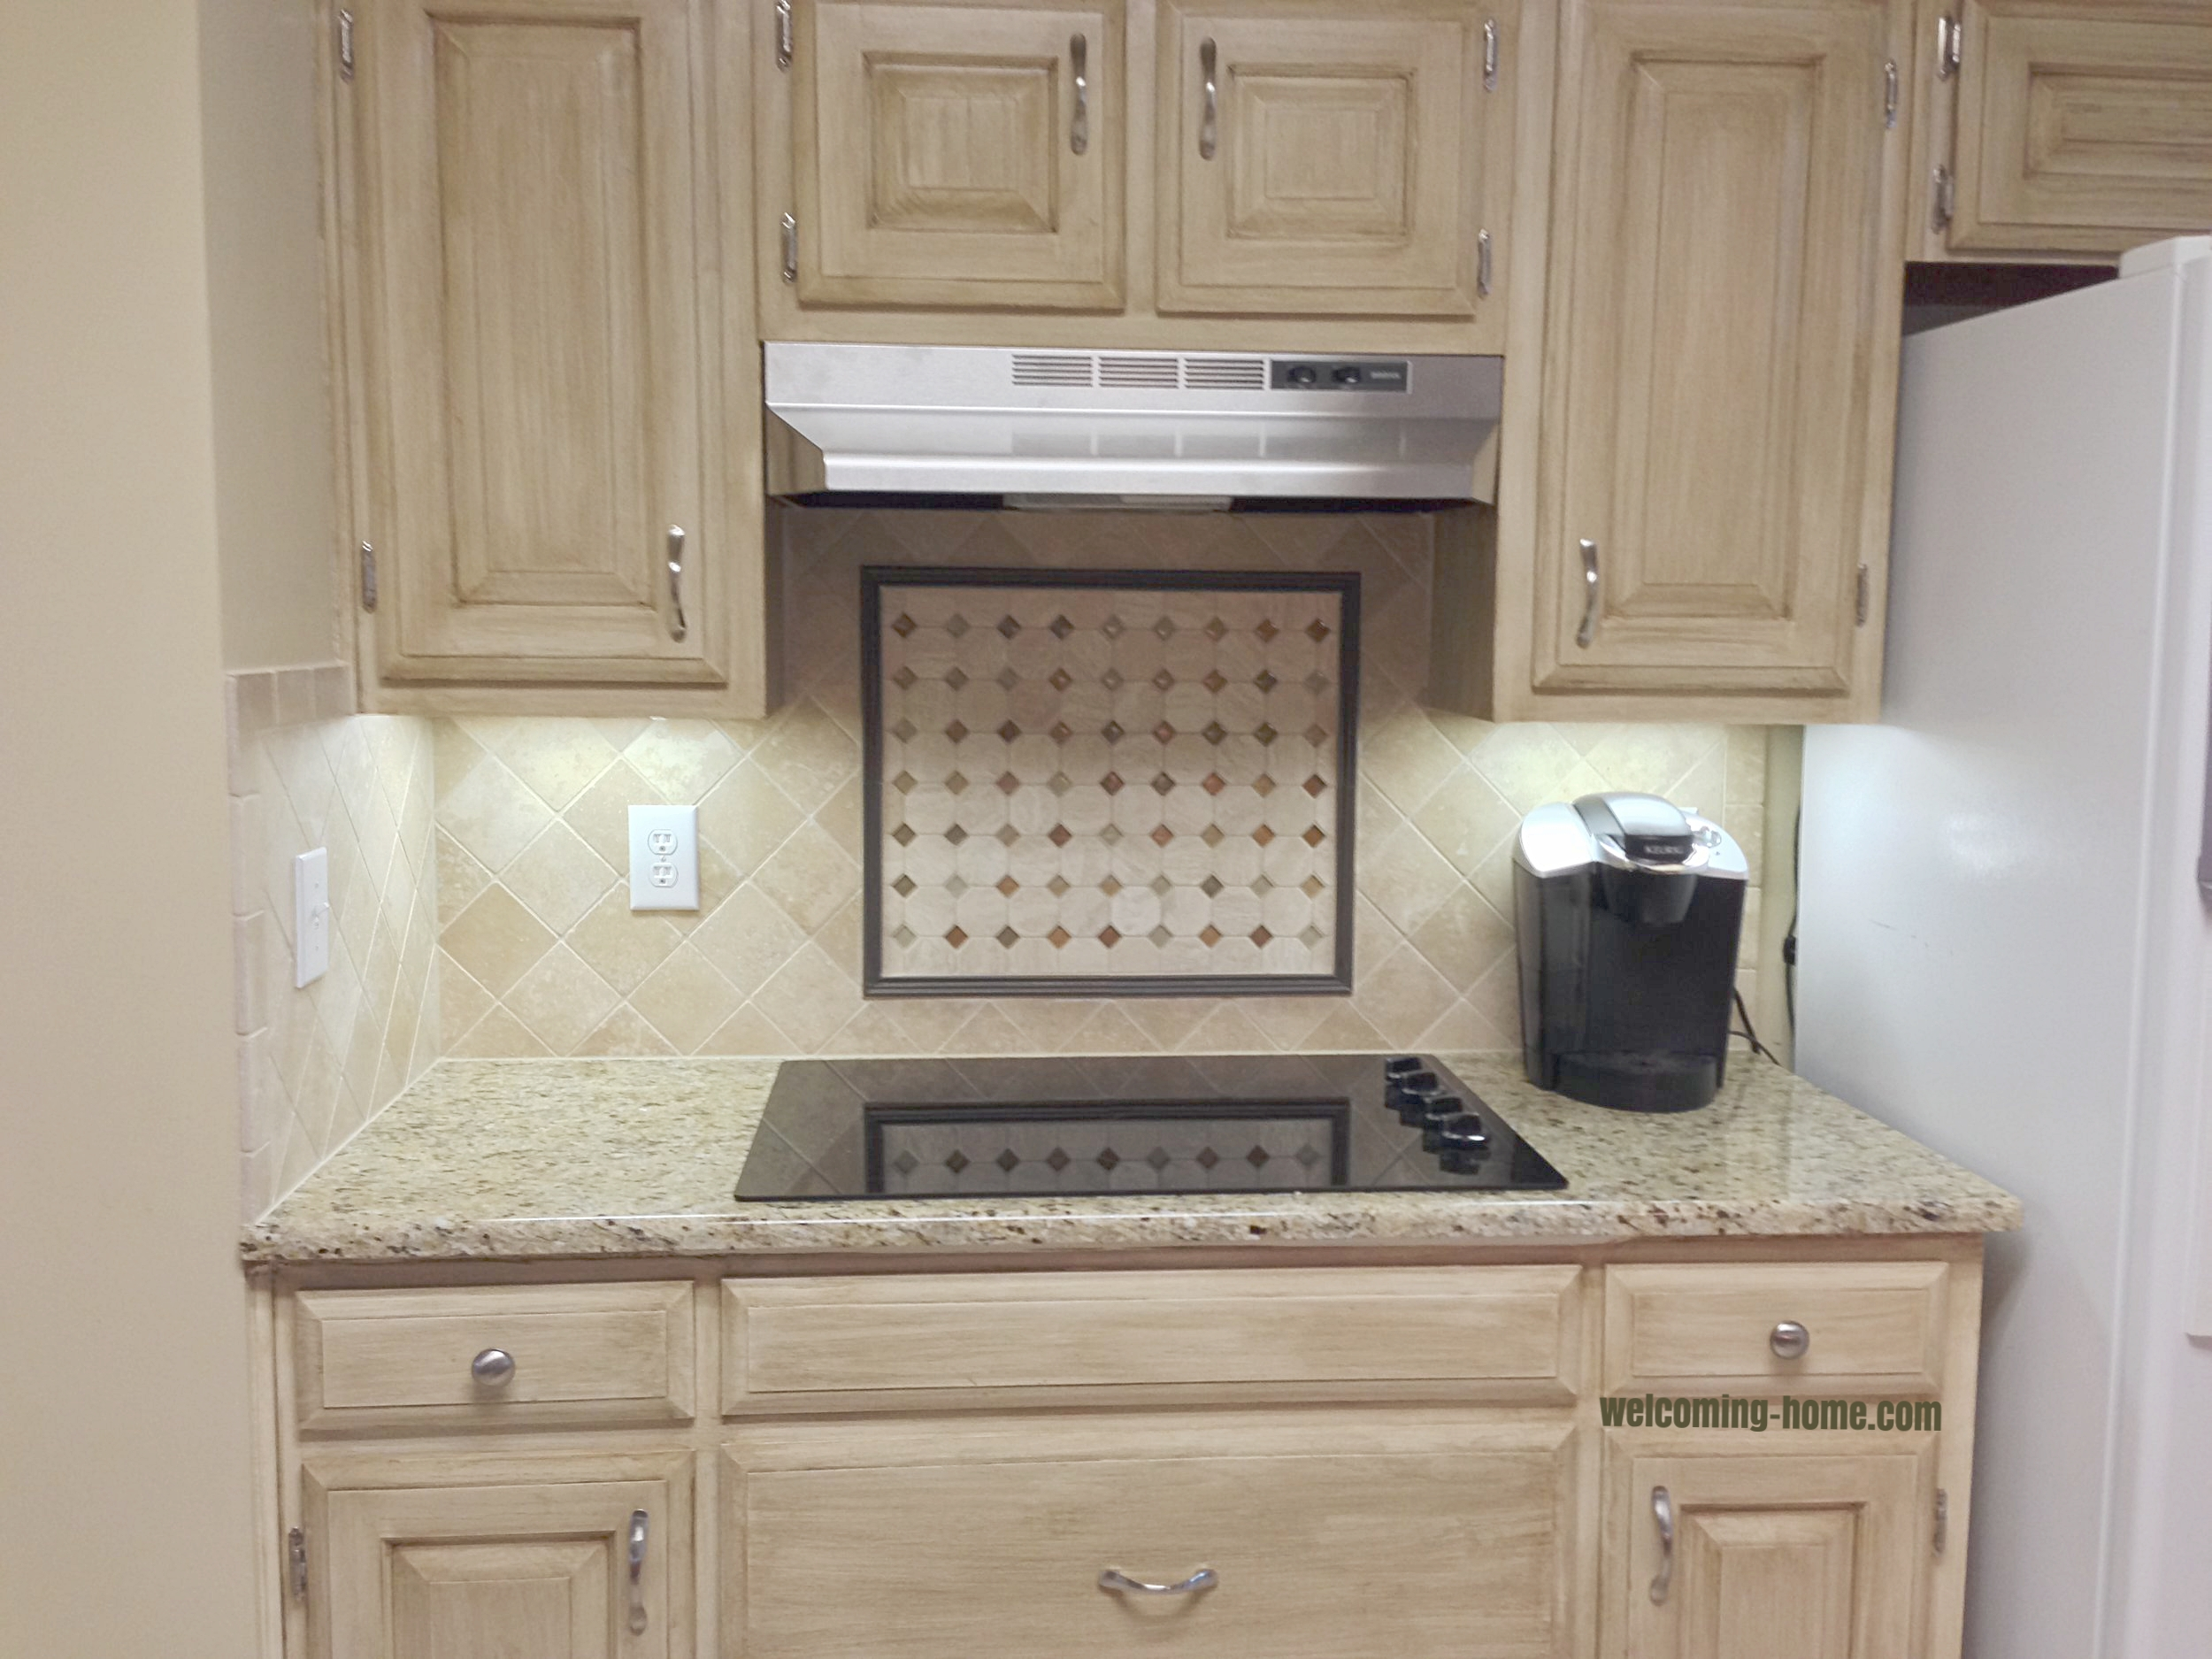 new backsplash, stovetop, vent hood, hardware